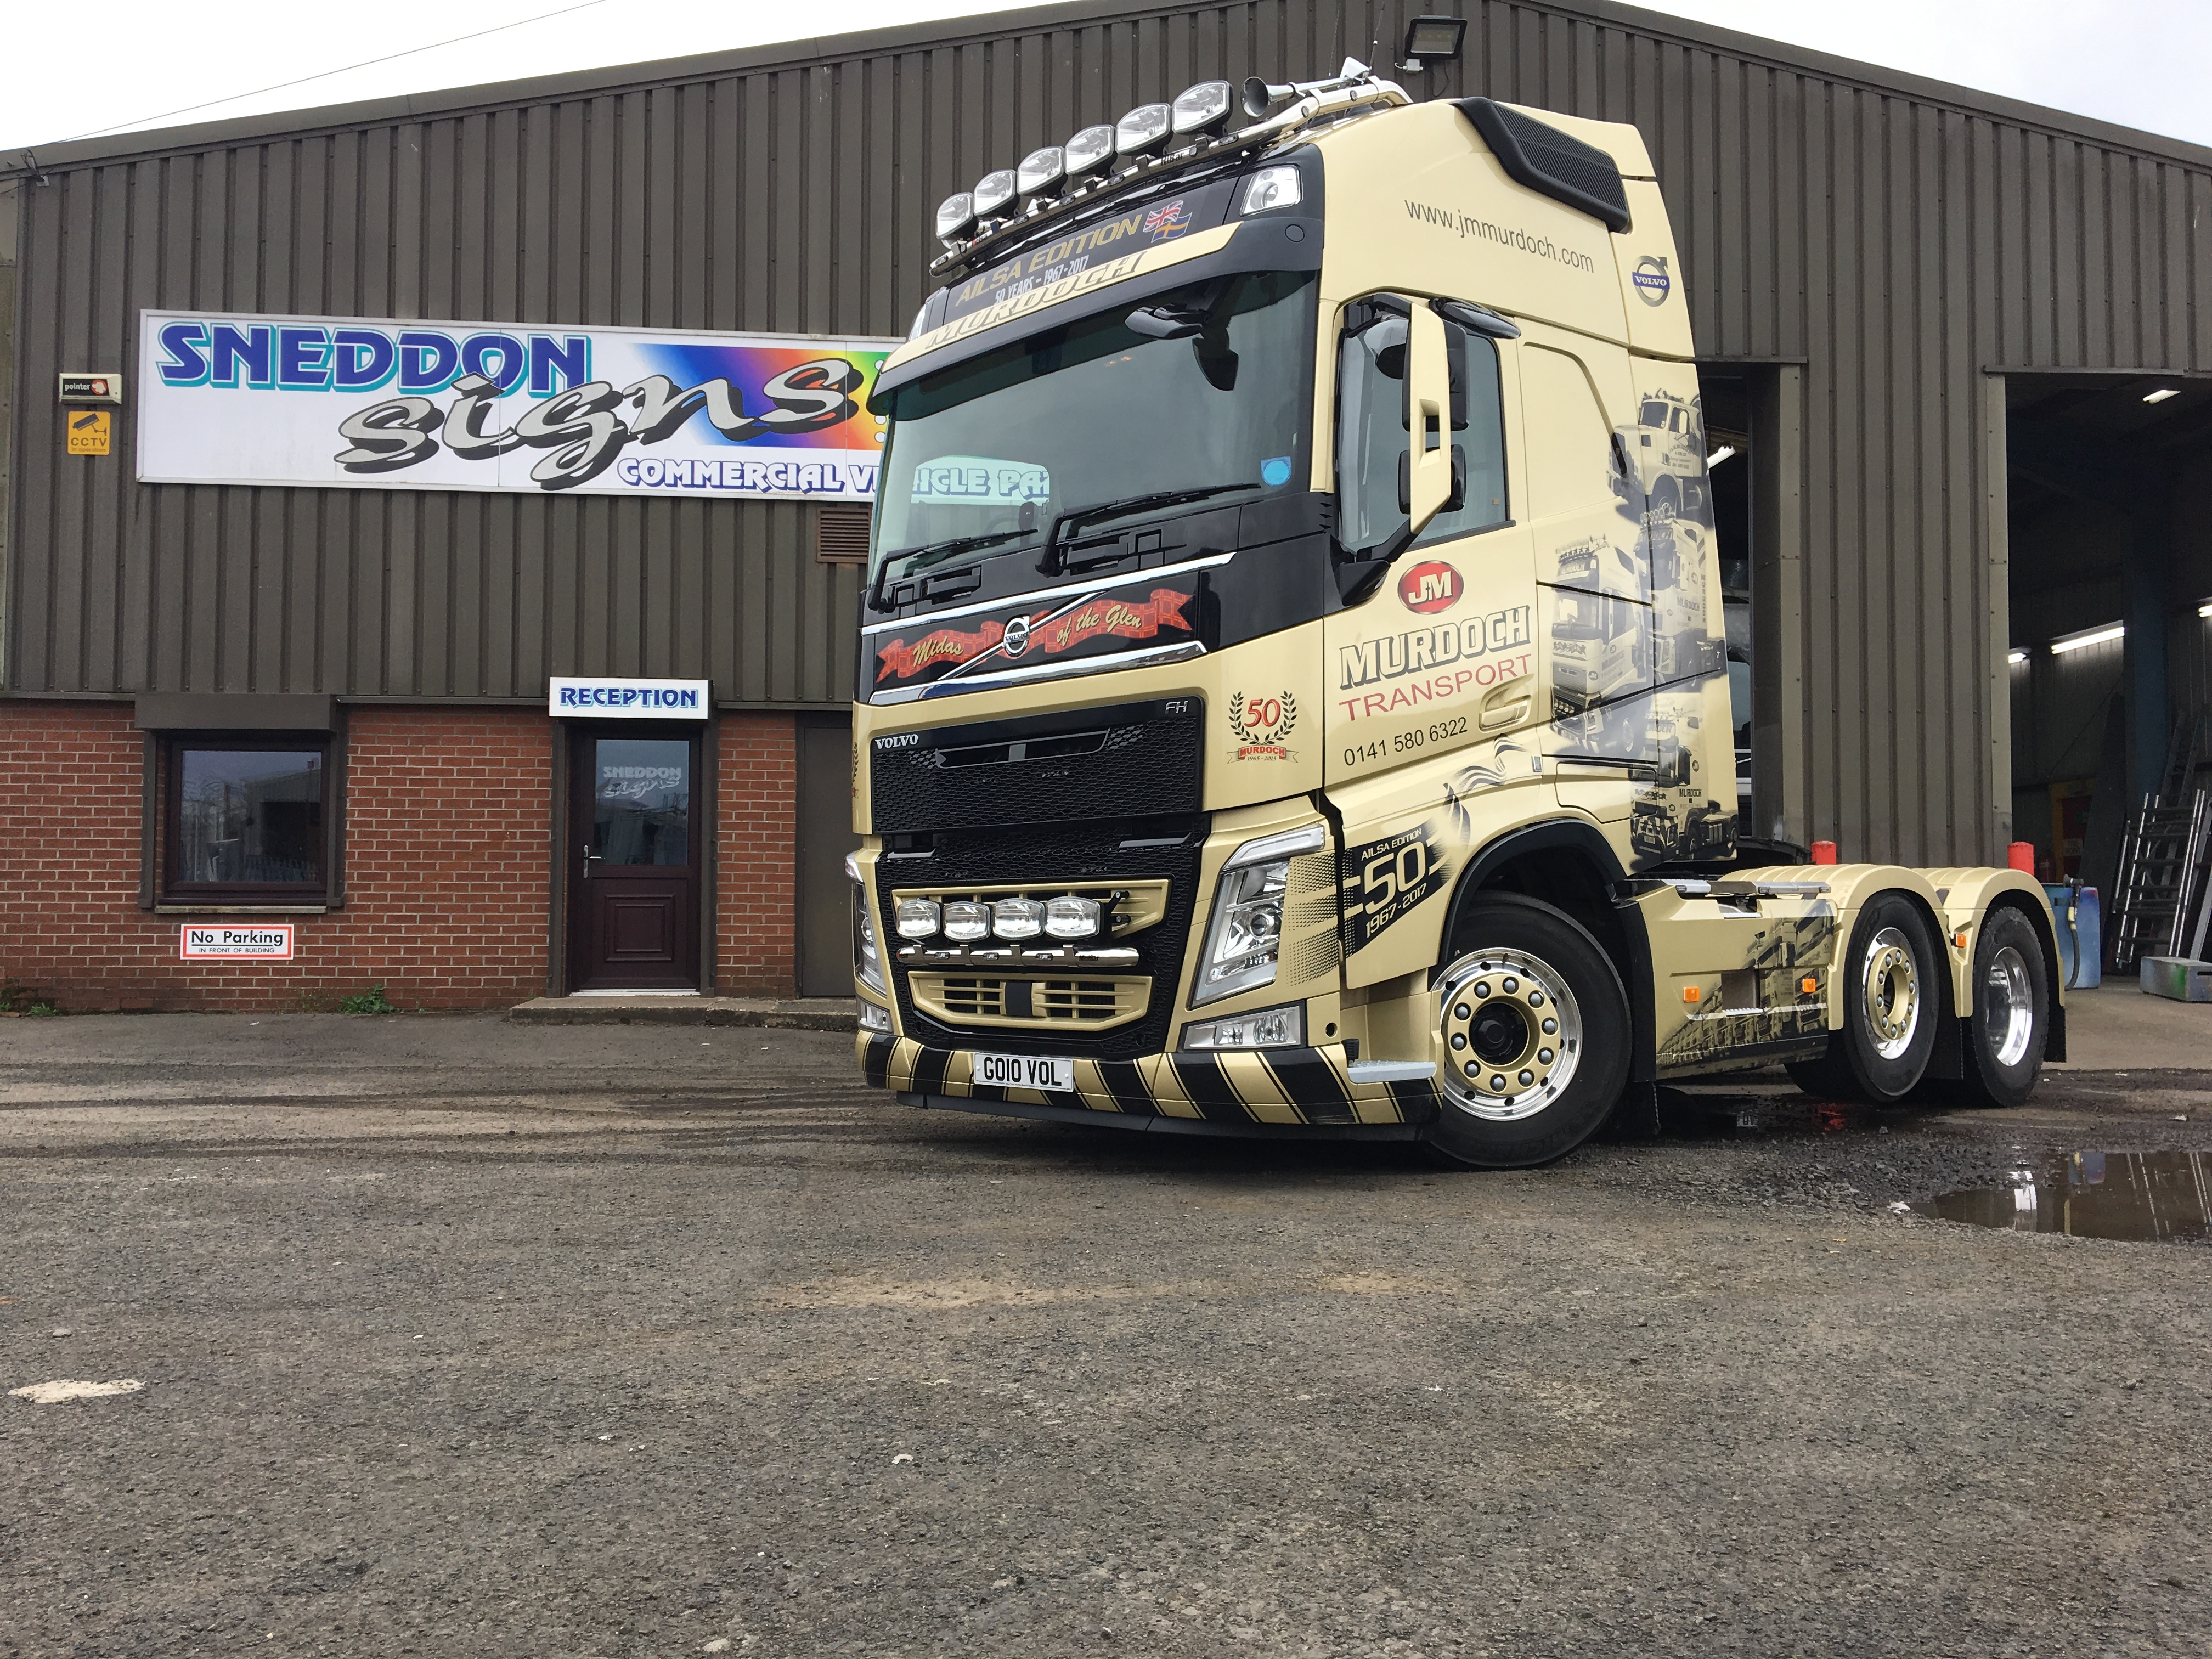 Truck cab wrapped and lettered for a 1 off special edition truck